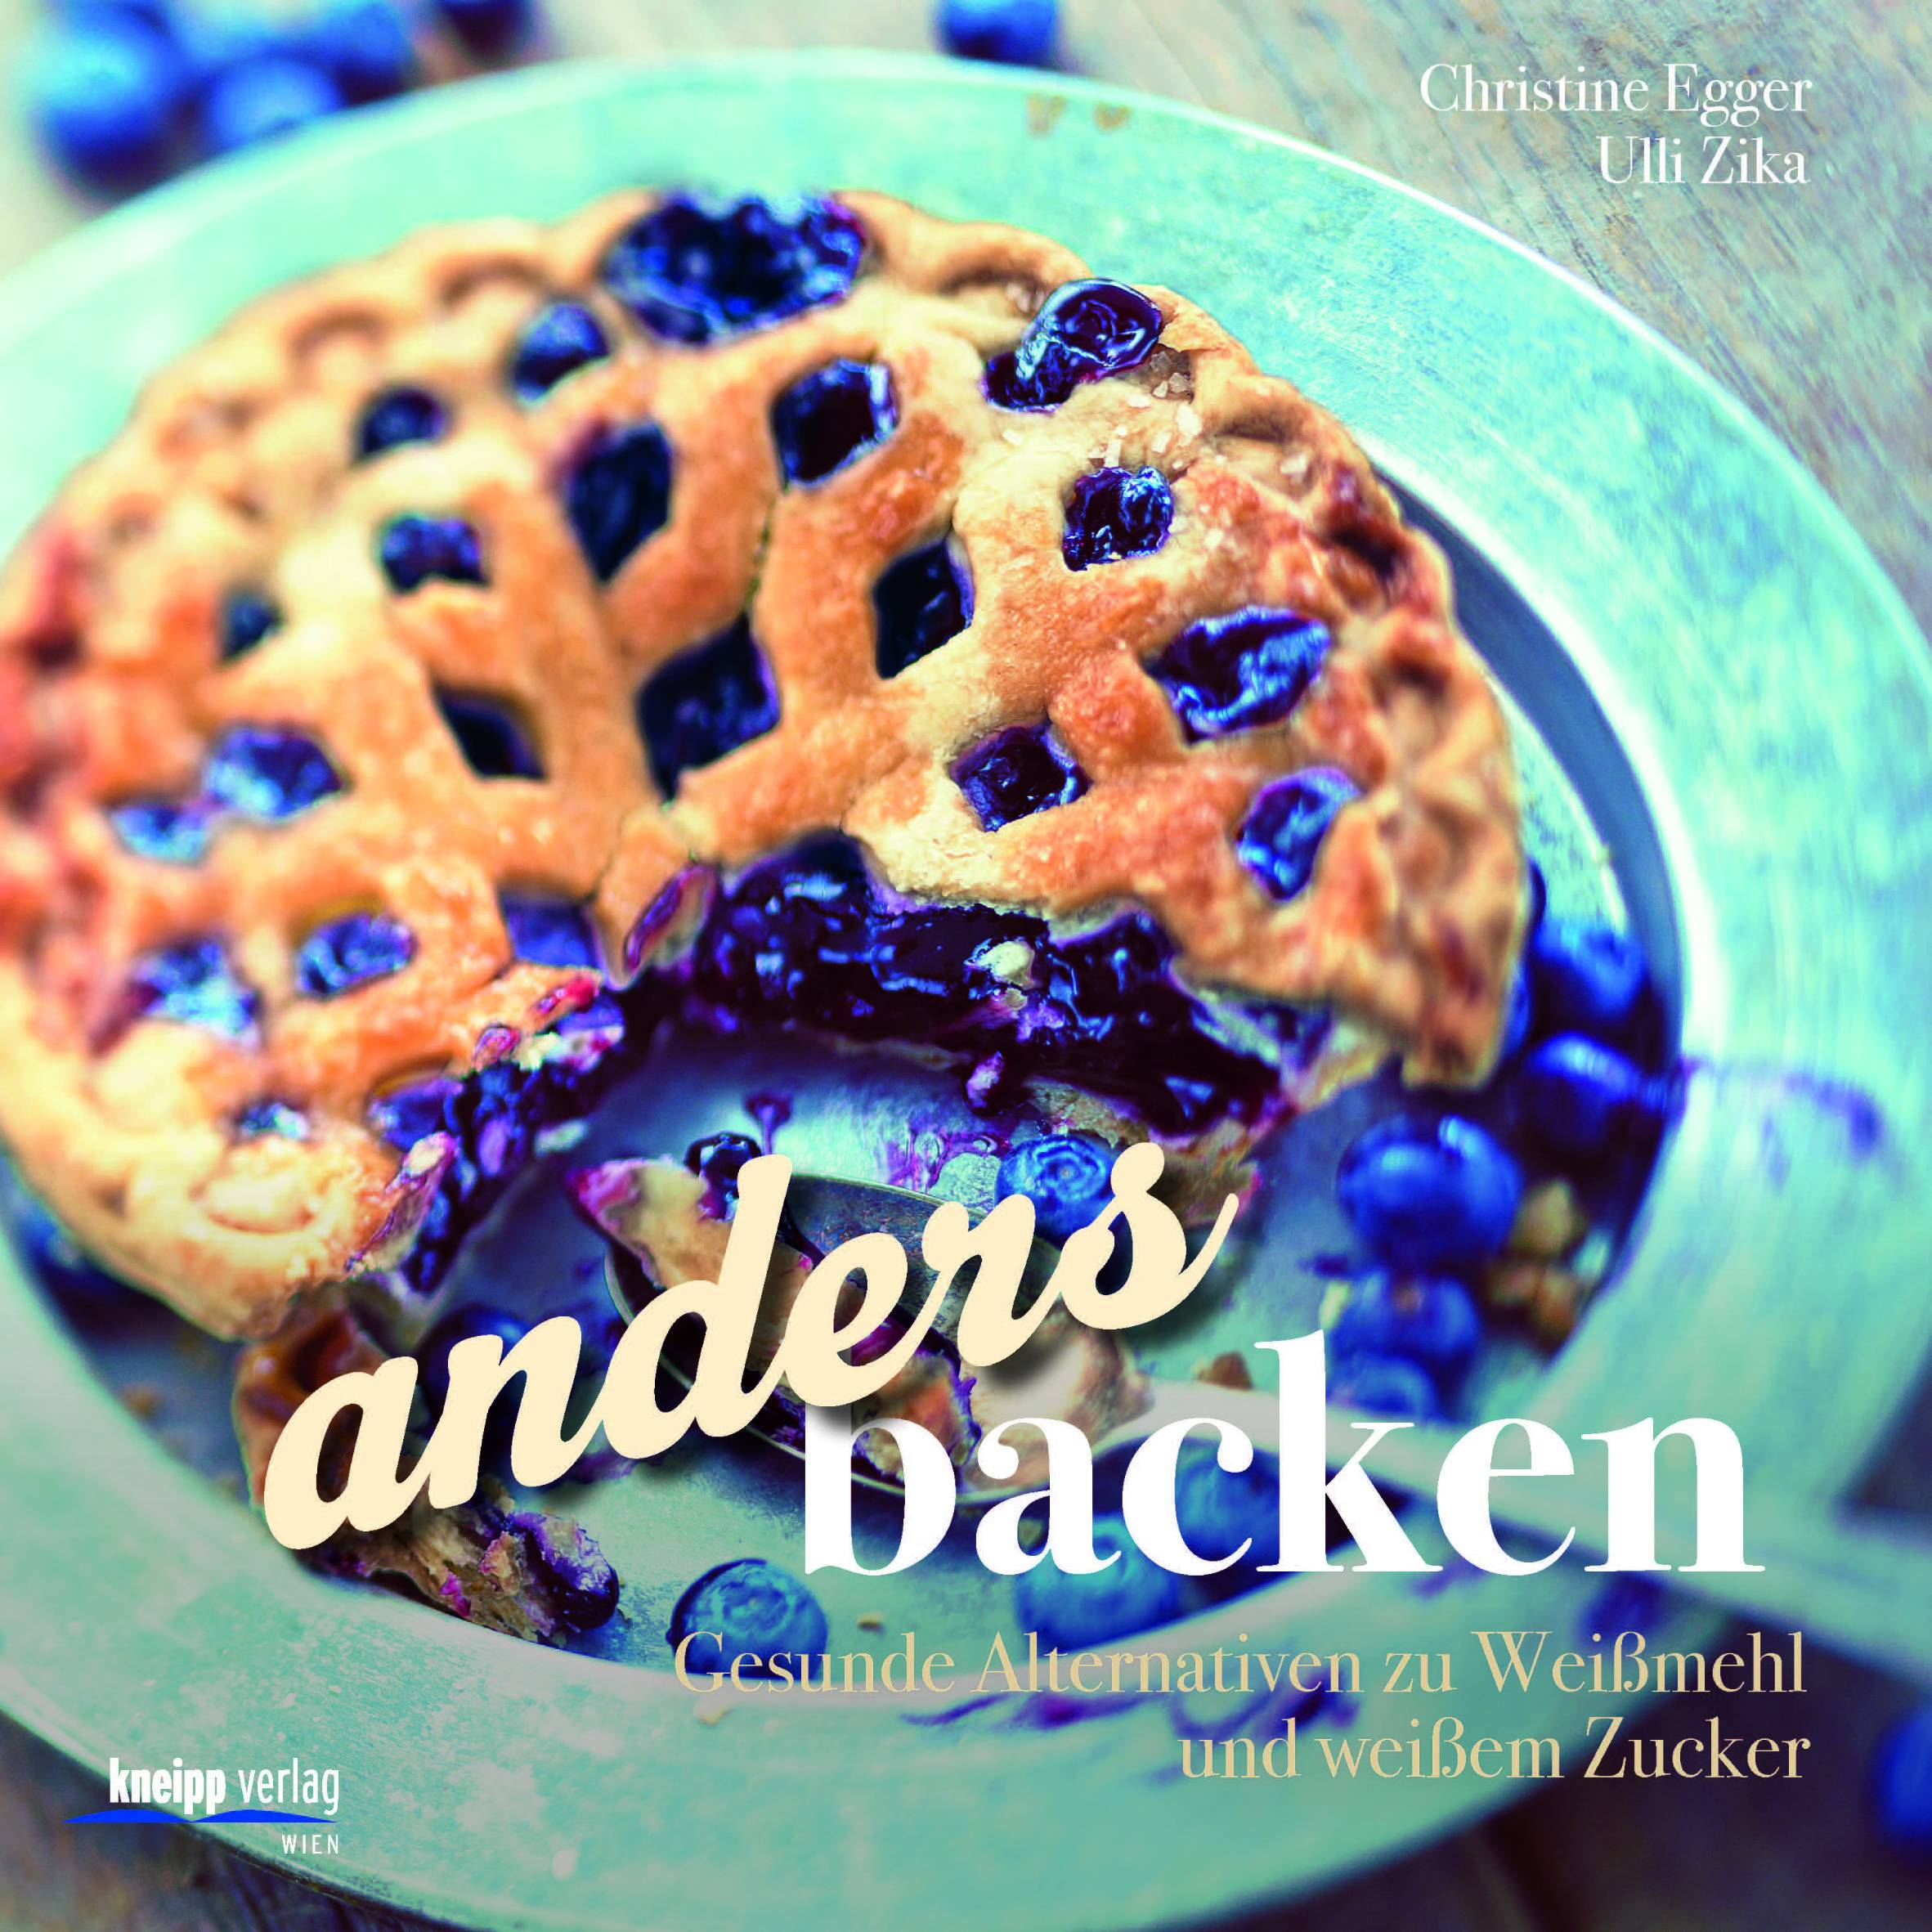 anders_backen_a075499a38